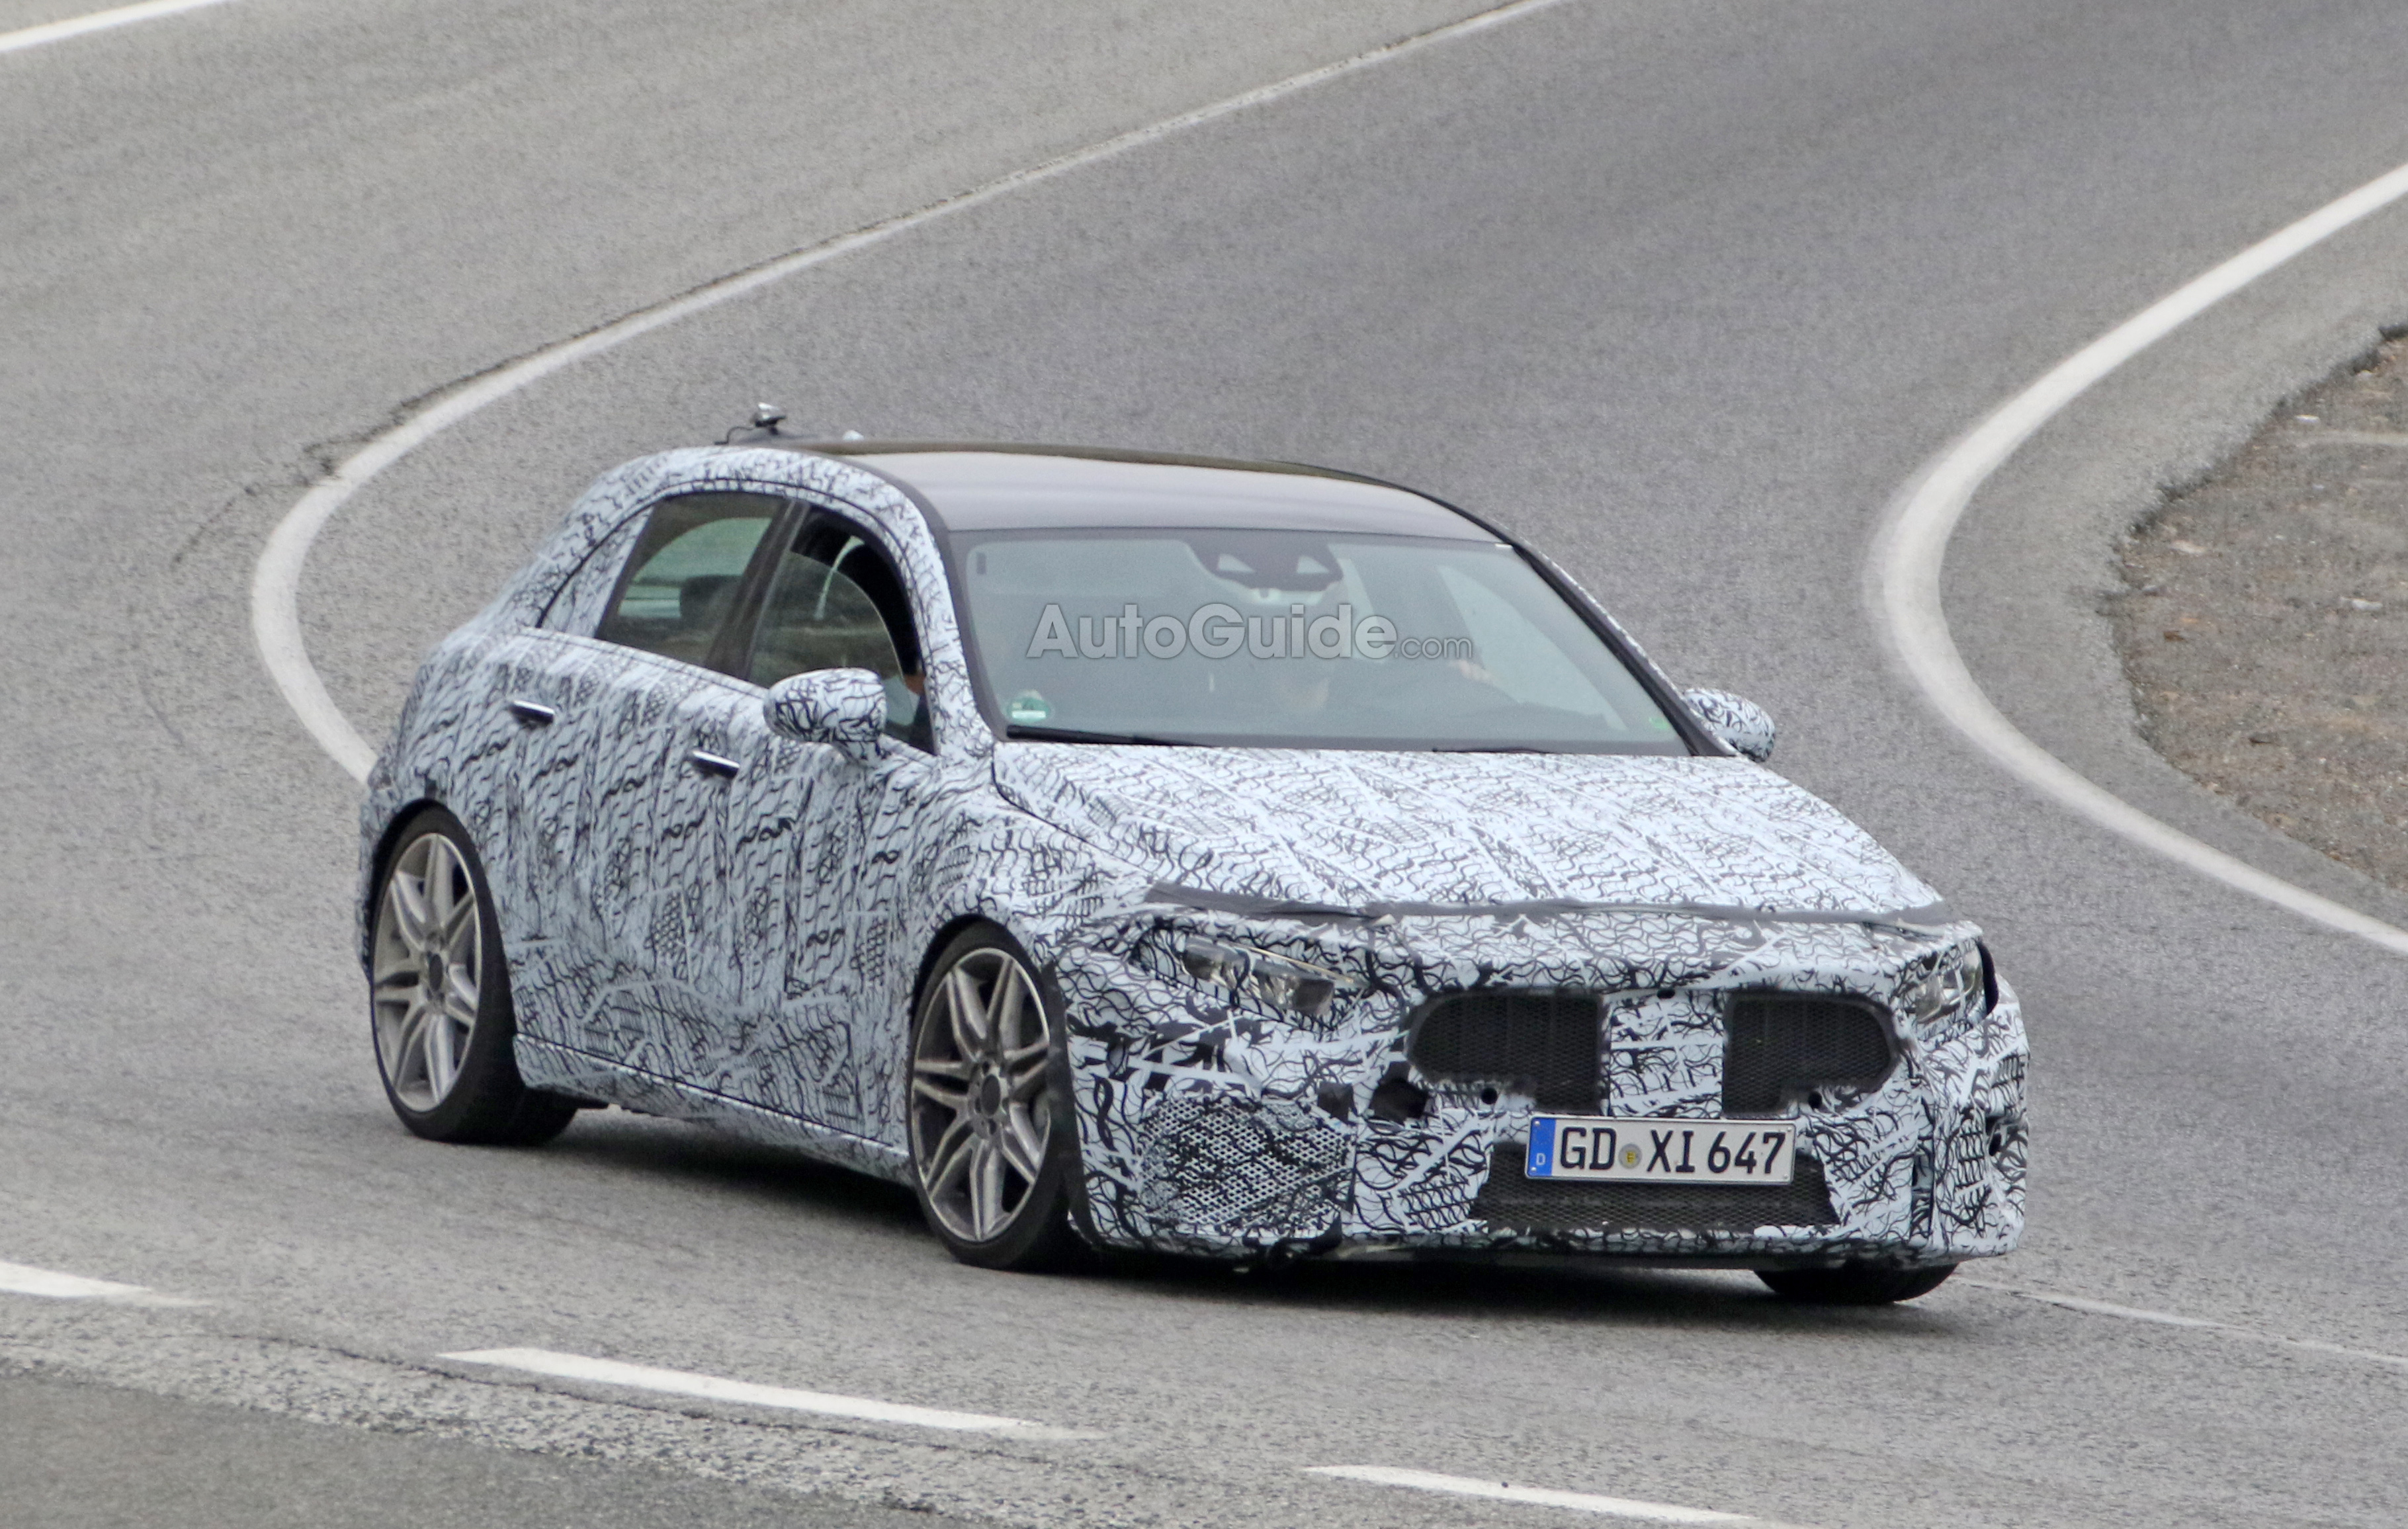 Nuova Cla Mercedes 2018 >> 2019 Mercedes-AMG A45 With 400 HP 2.0L Spied Testing » AutoGuide.com News